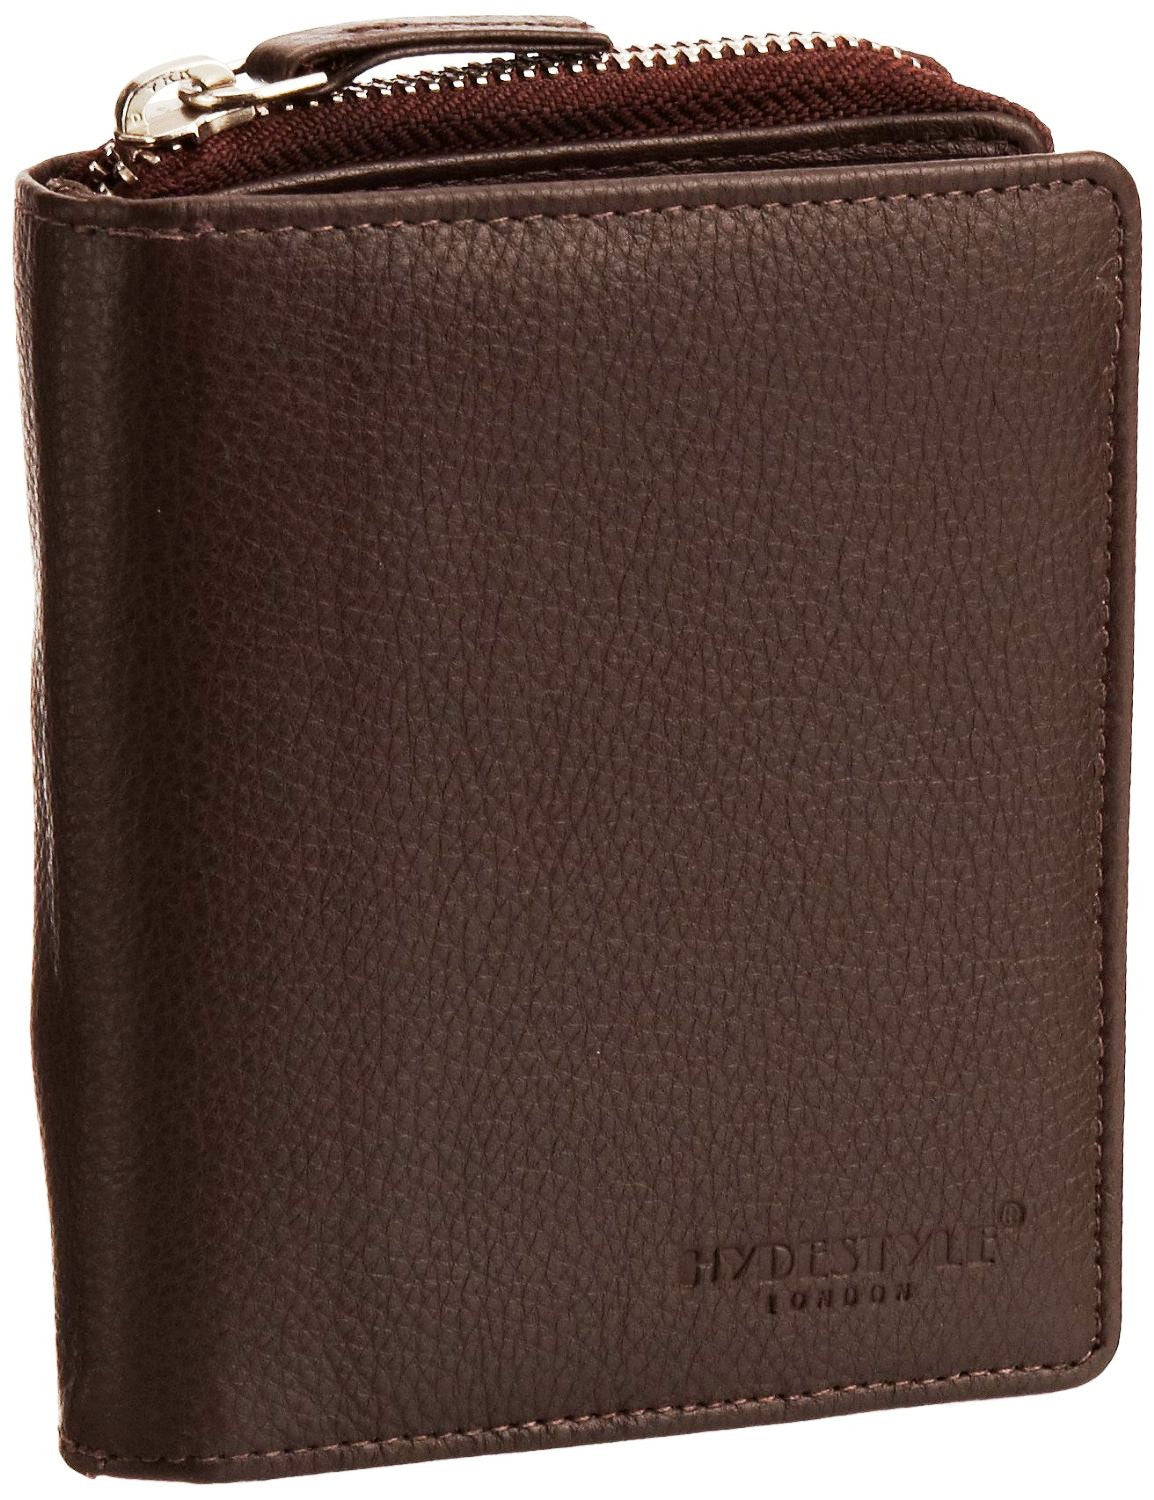 Pratico - women leather trifold wallet #LW01 Brown